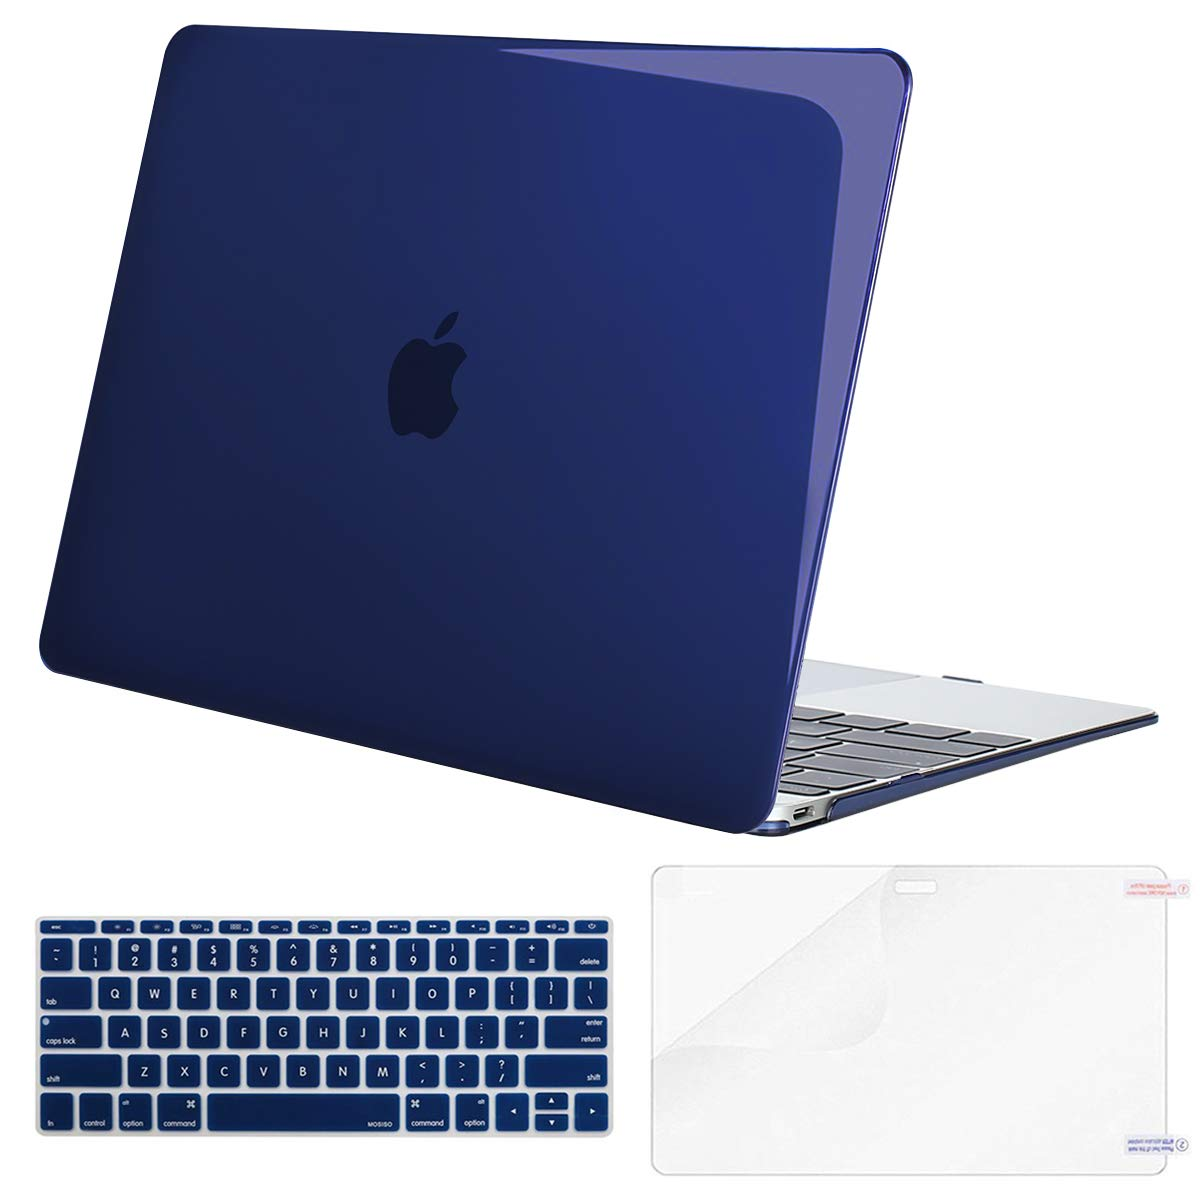 MOSISO Plastic Hard Shell Case & Keyboard Cover Skin & Screen Protector Compatible with MacBook 12 inch with Retina Display (Model A1534, Release 2017 2016 2015), Crystal Navy Blue